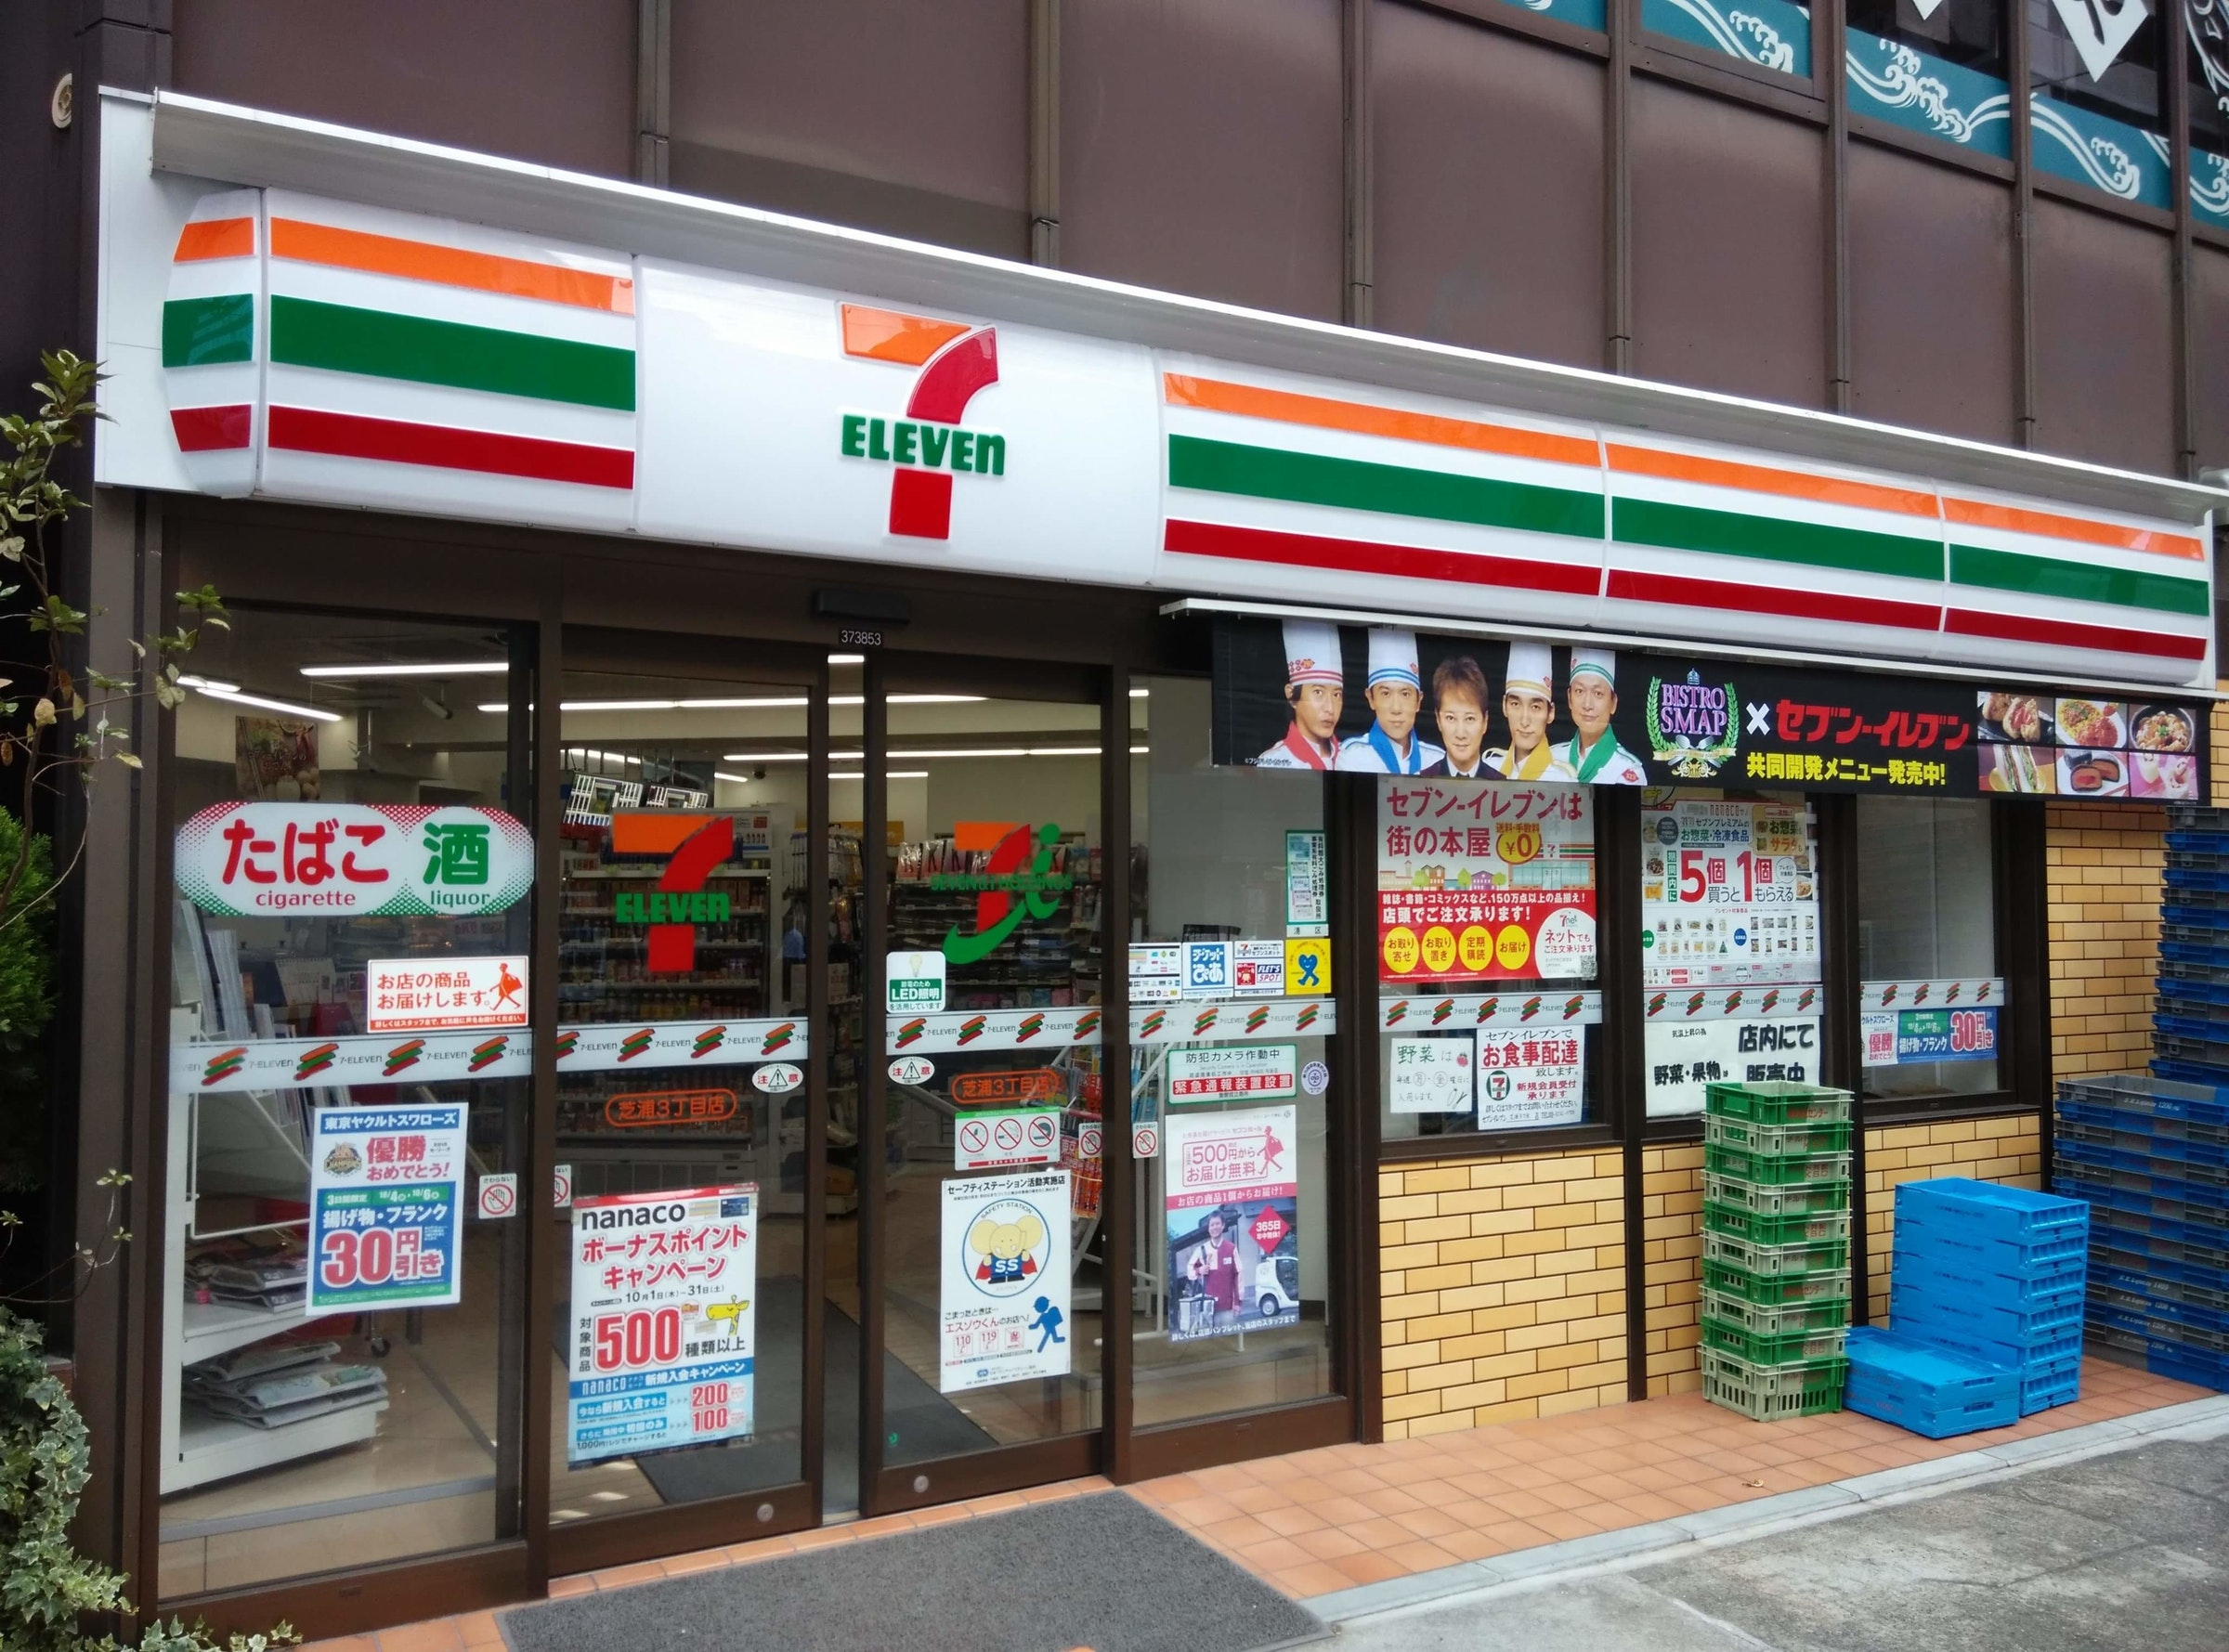 Convenience Shop, Restaurant, Fast food restaurant, Food, , 7-Eleven, Fast food, Supermarket, Grocery store, Convenience, 7 eleven, Convenience store, Building, Retail, Grocery store